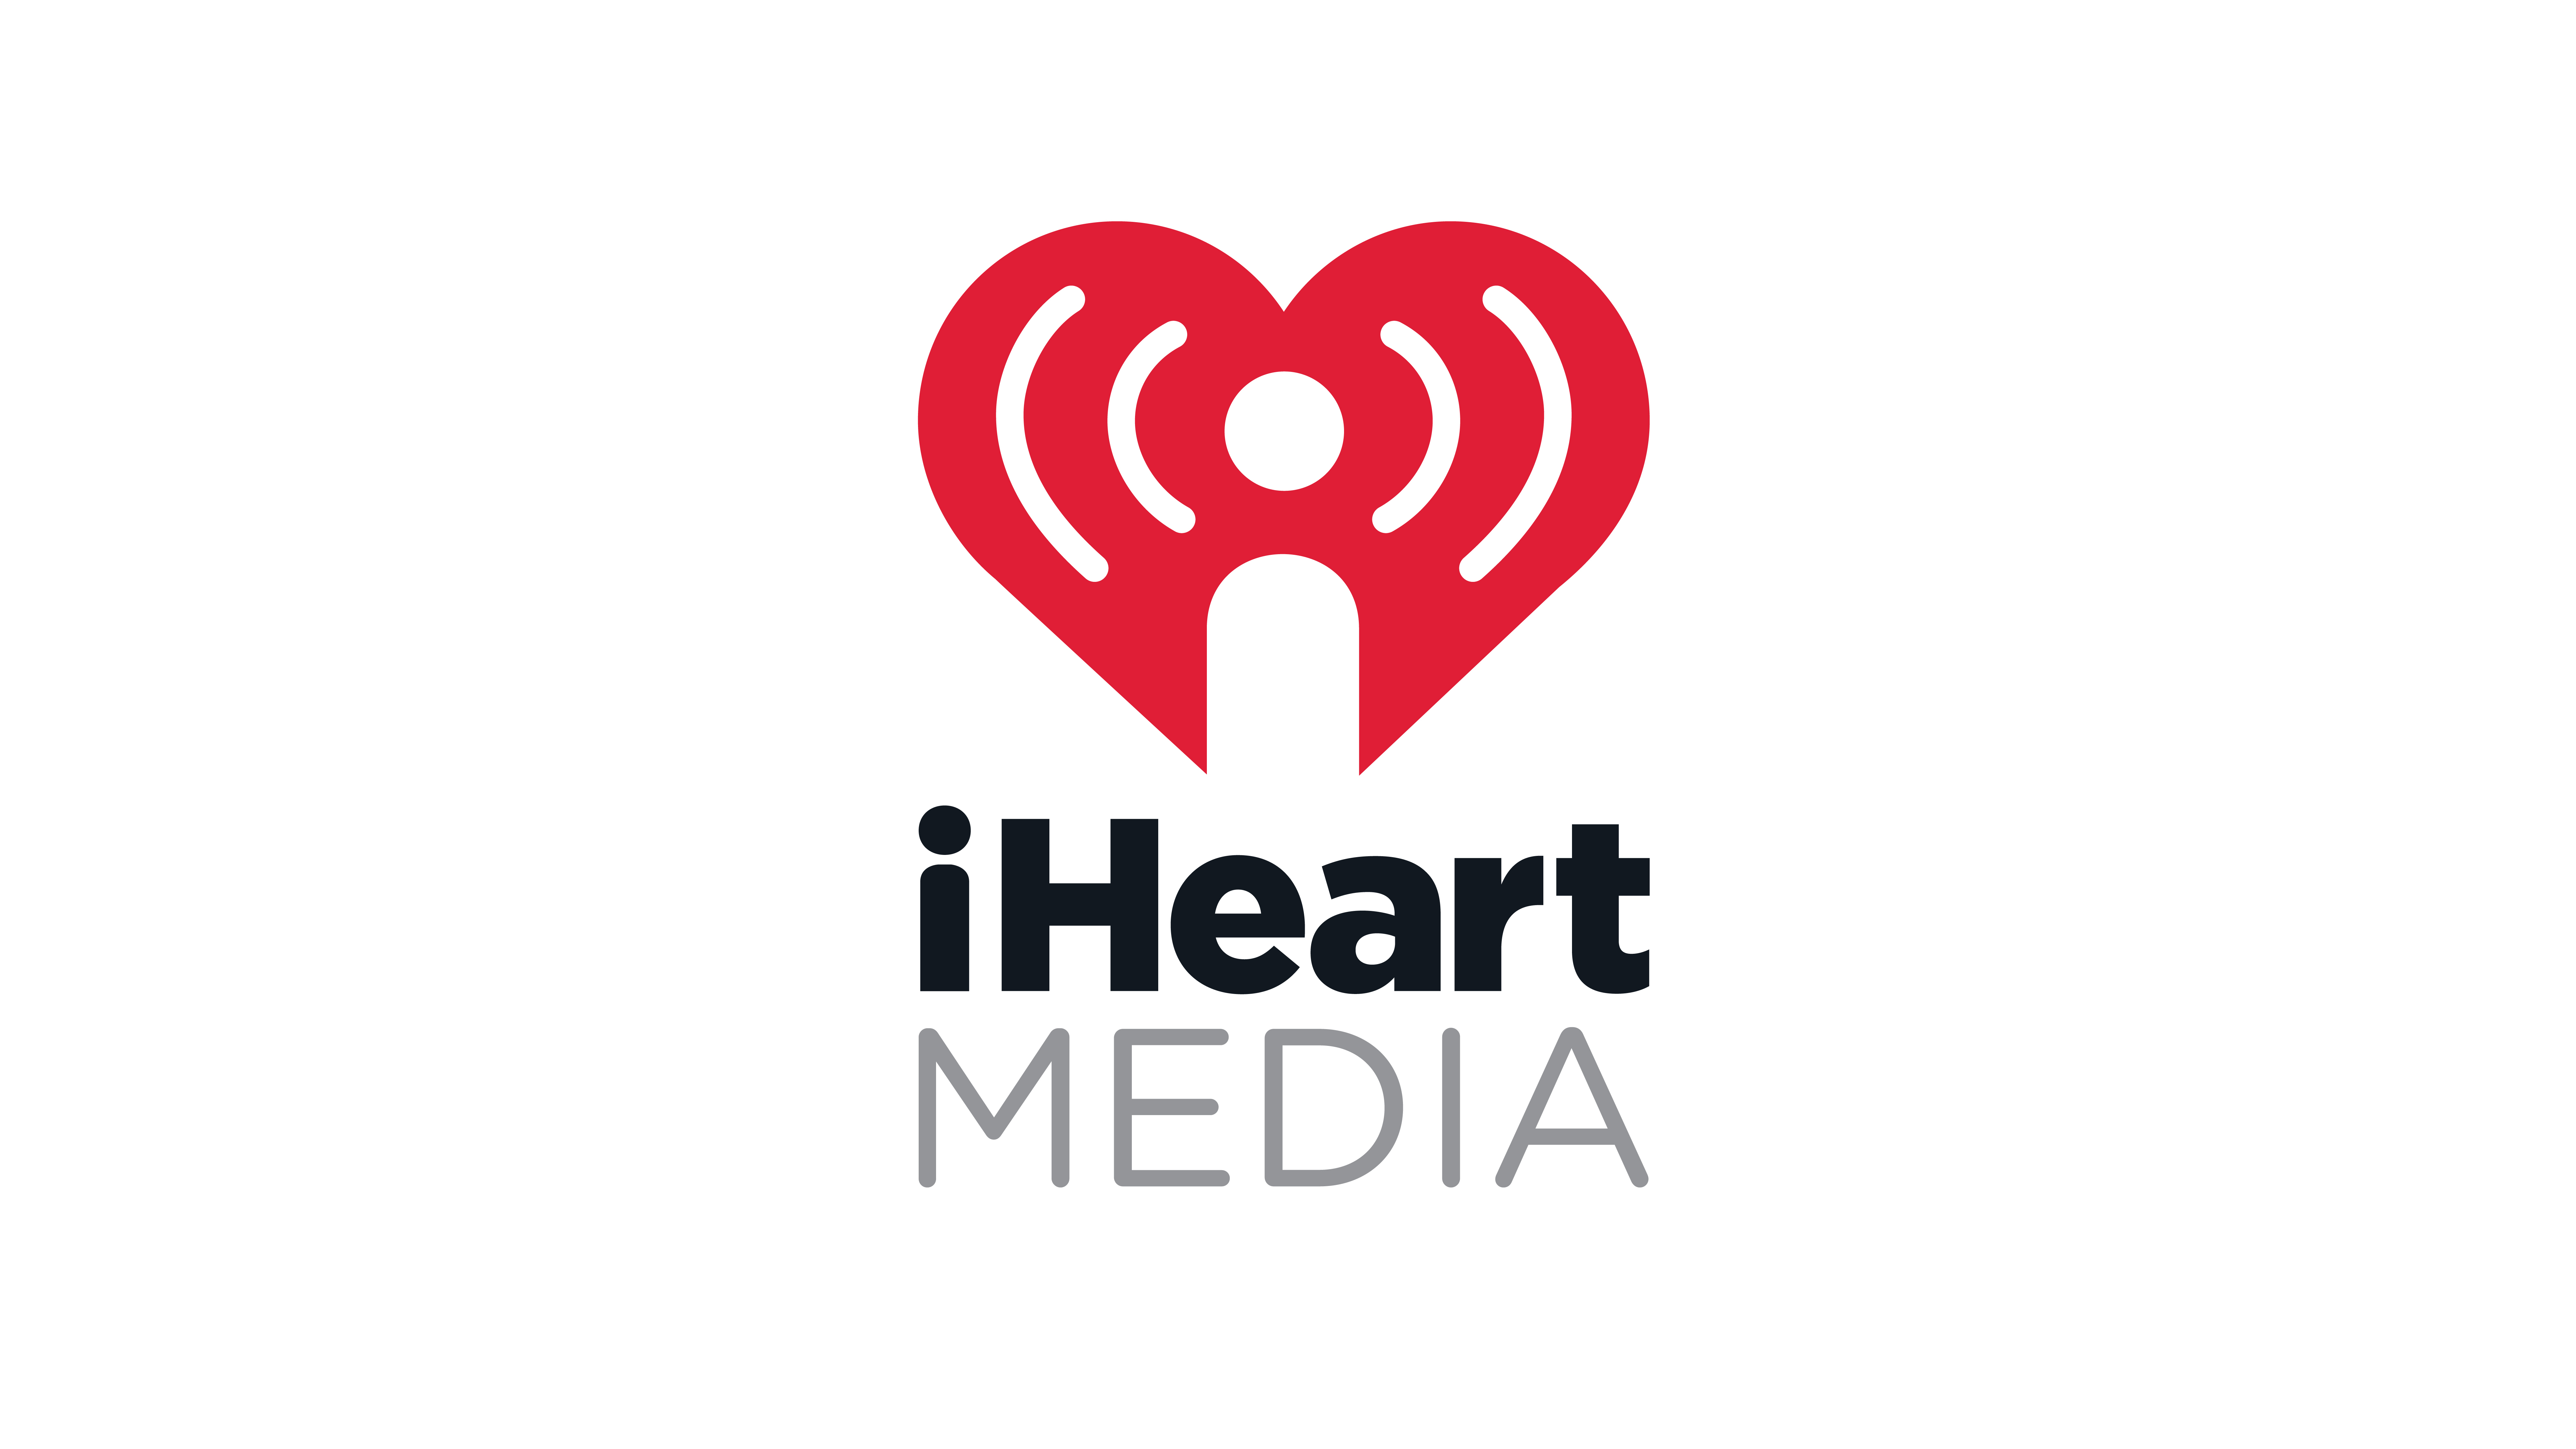 iHeart MEDIA Inc logo